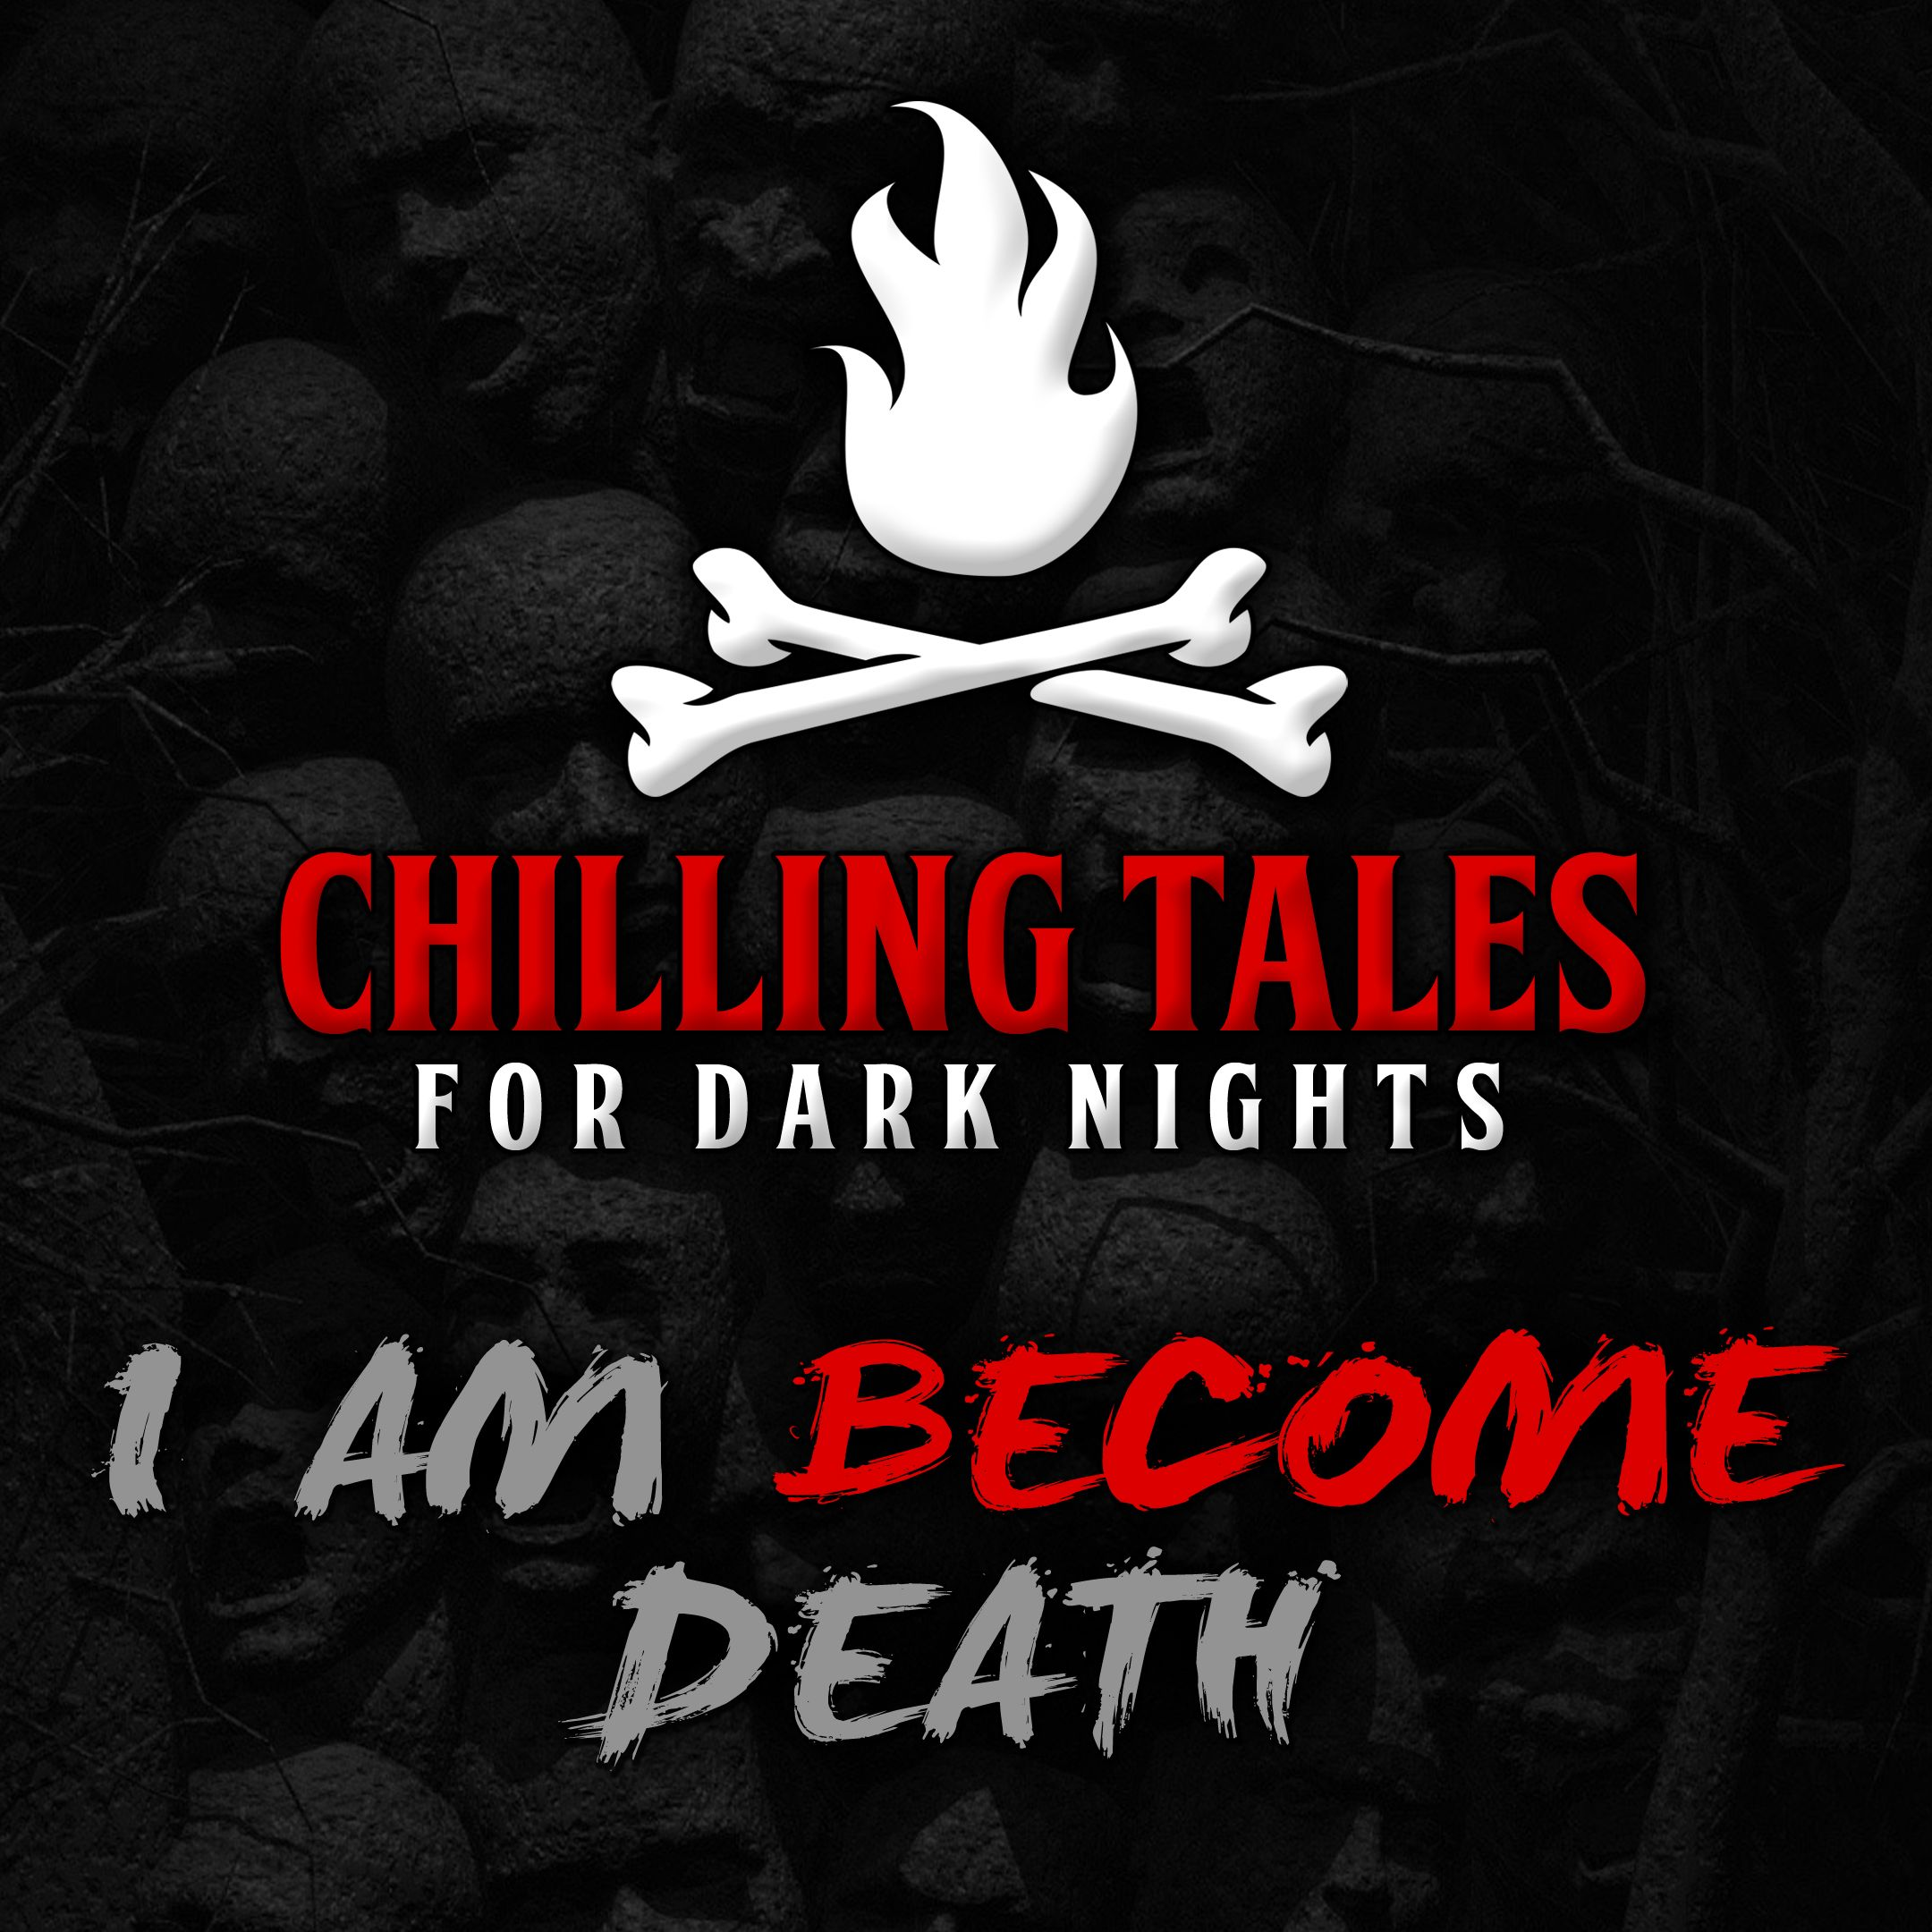 42: I am Become Death – Chilling Tales for Dark Nights